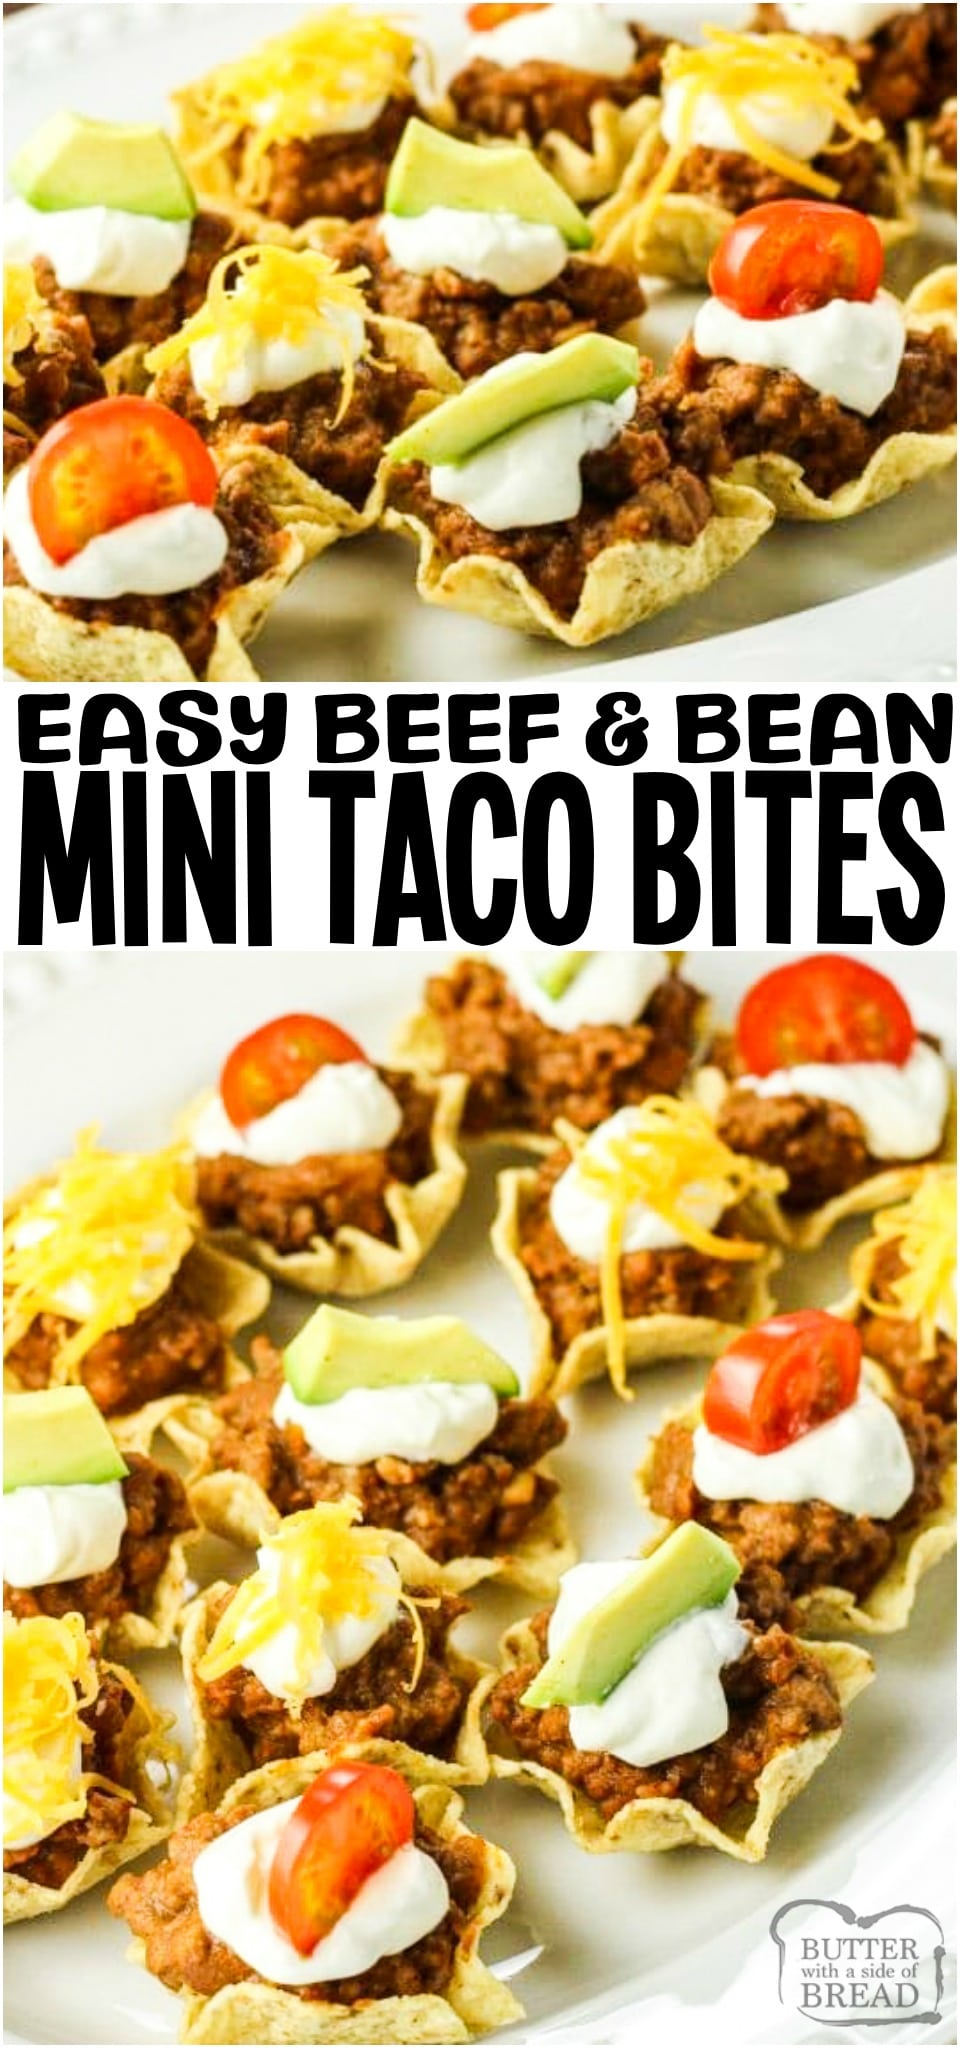 Taco Bites are tortilla chips filled with a combination of ground beef, refried beans and taco seasoning topped off with your favorite toppings. These mini taco bites are perfect to serve as an appetizer or a fun family meal.